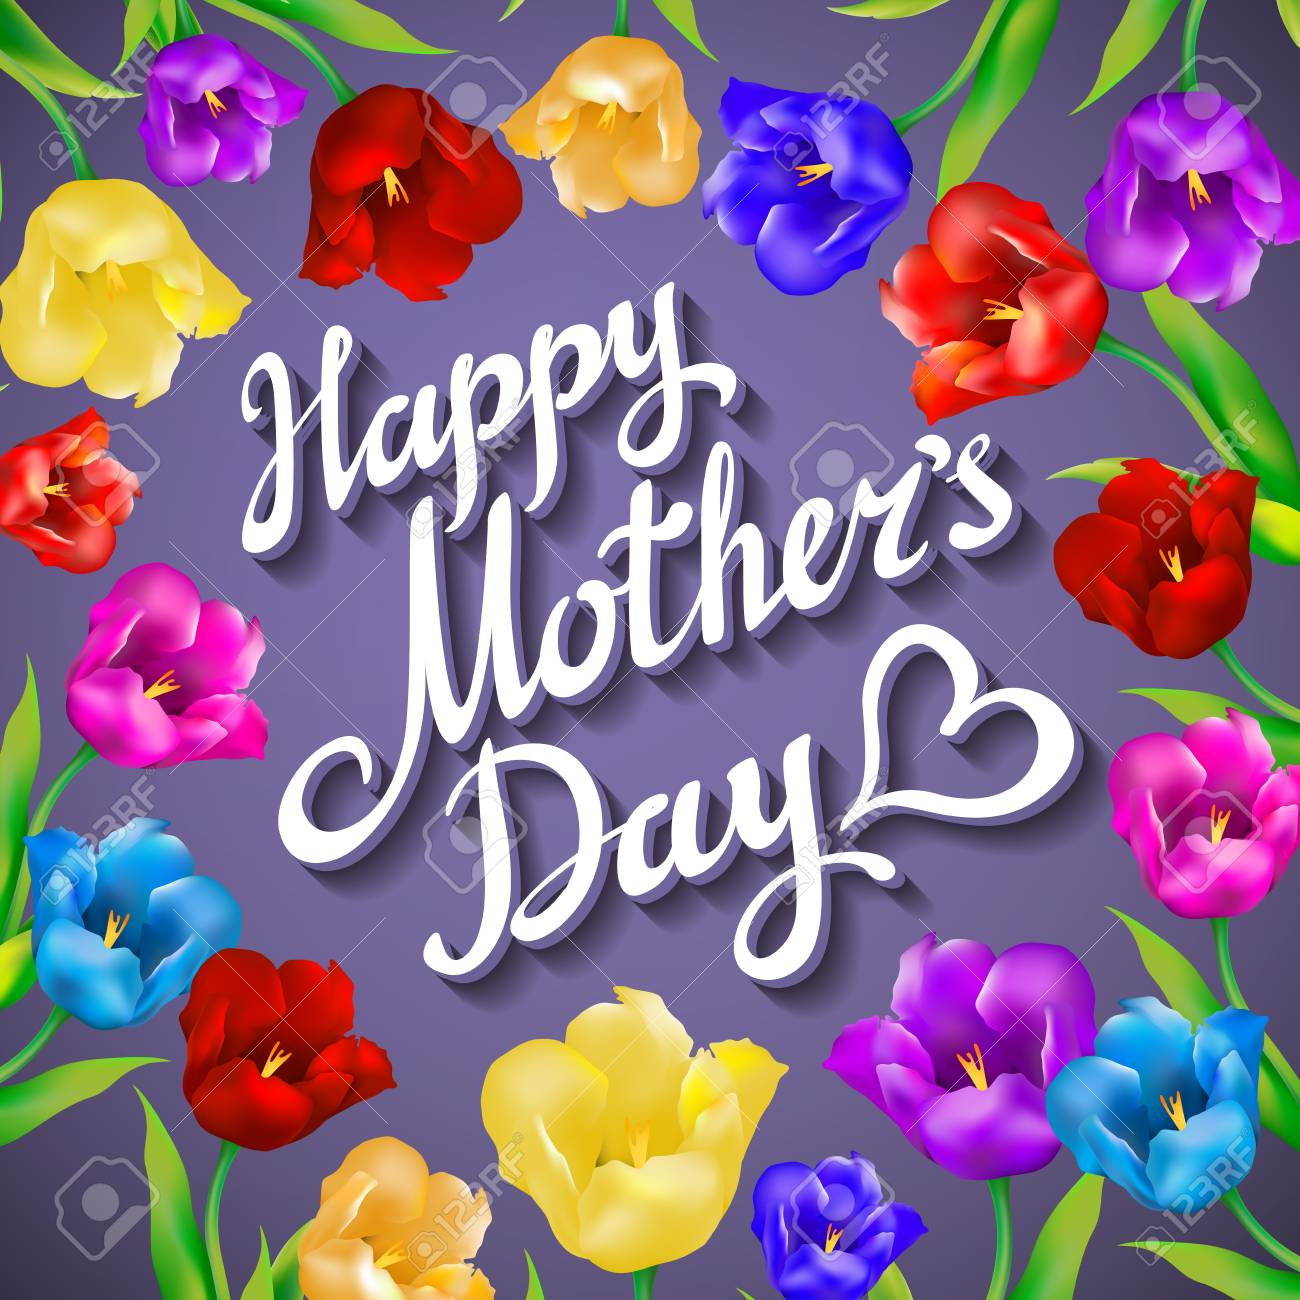 Gift Card For Mother S Day With Spring Flower On Violet Background Royalty Free Cliparts Vectors And Stock Illustration Image 55812834